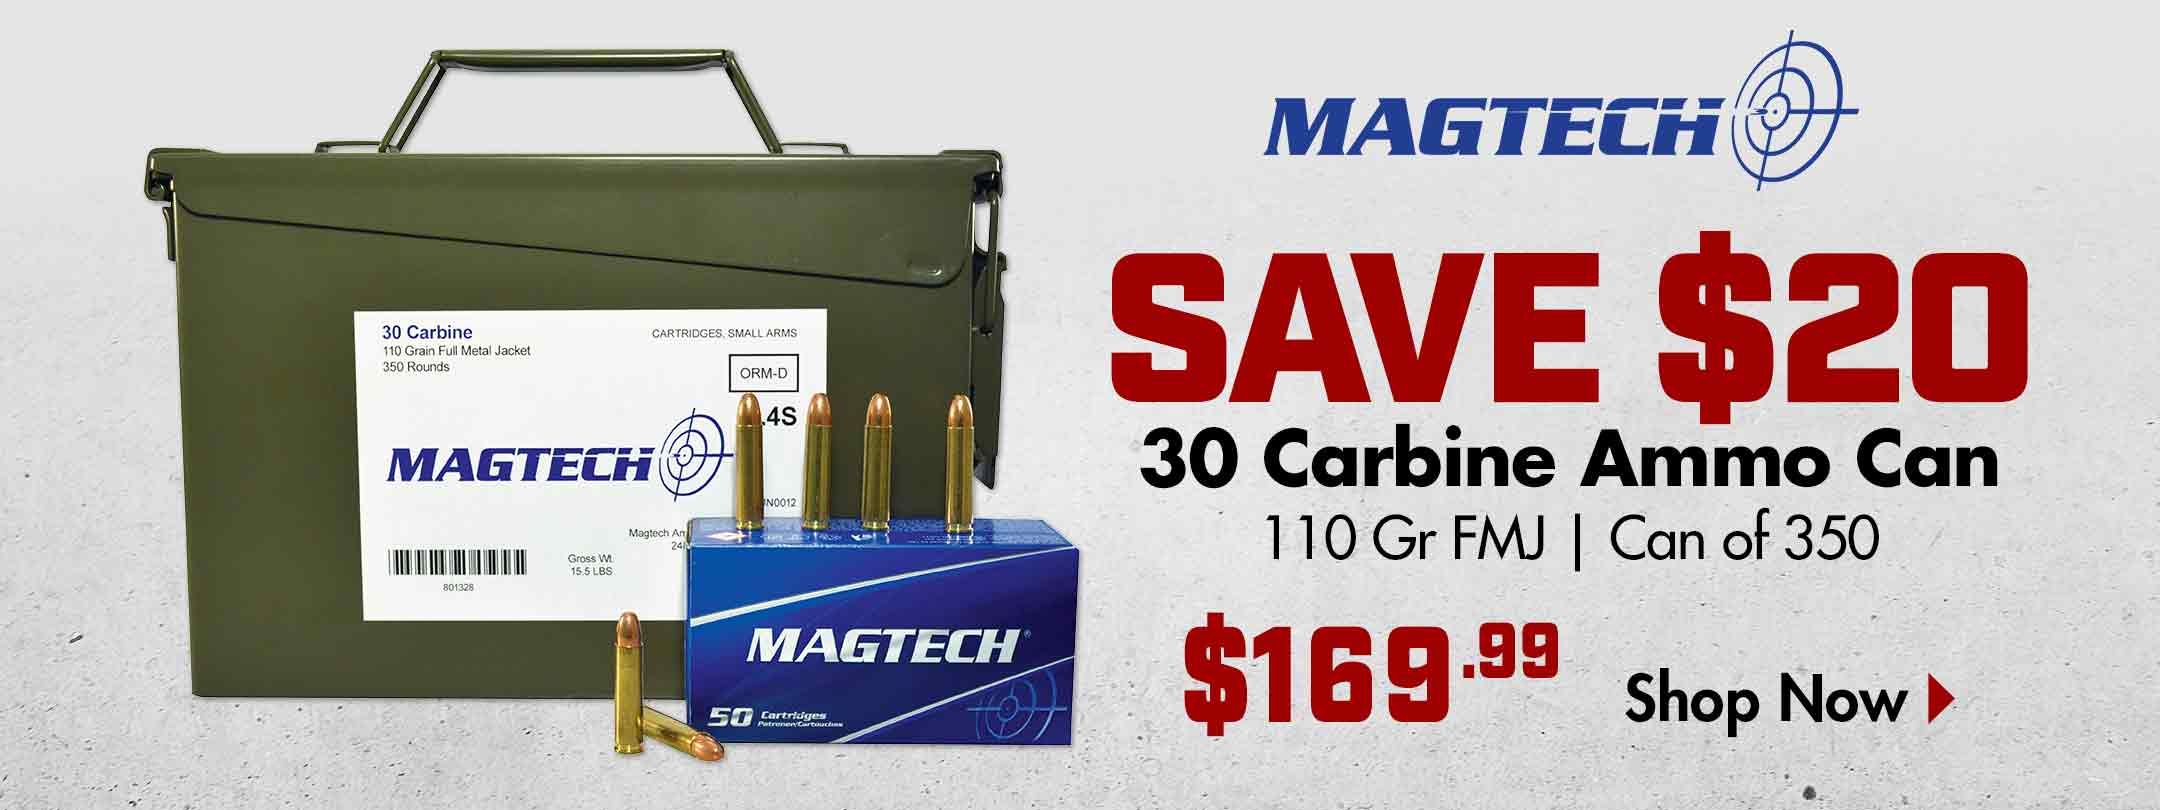 Save $20 on Magtech 30 Carbine 100 Gr FMJ Ammo Can of350